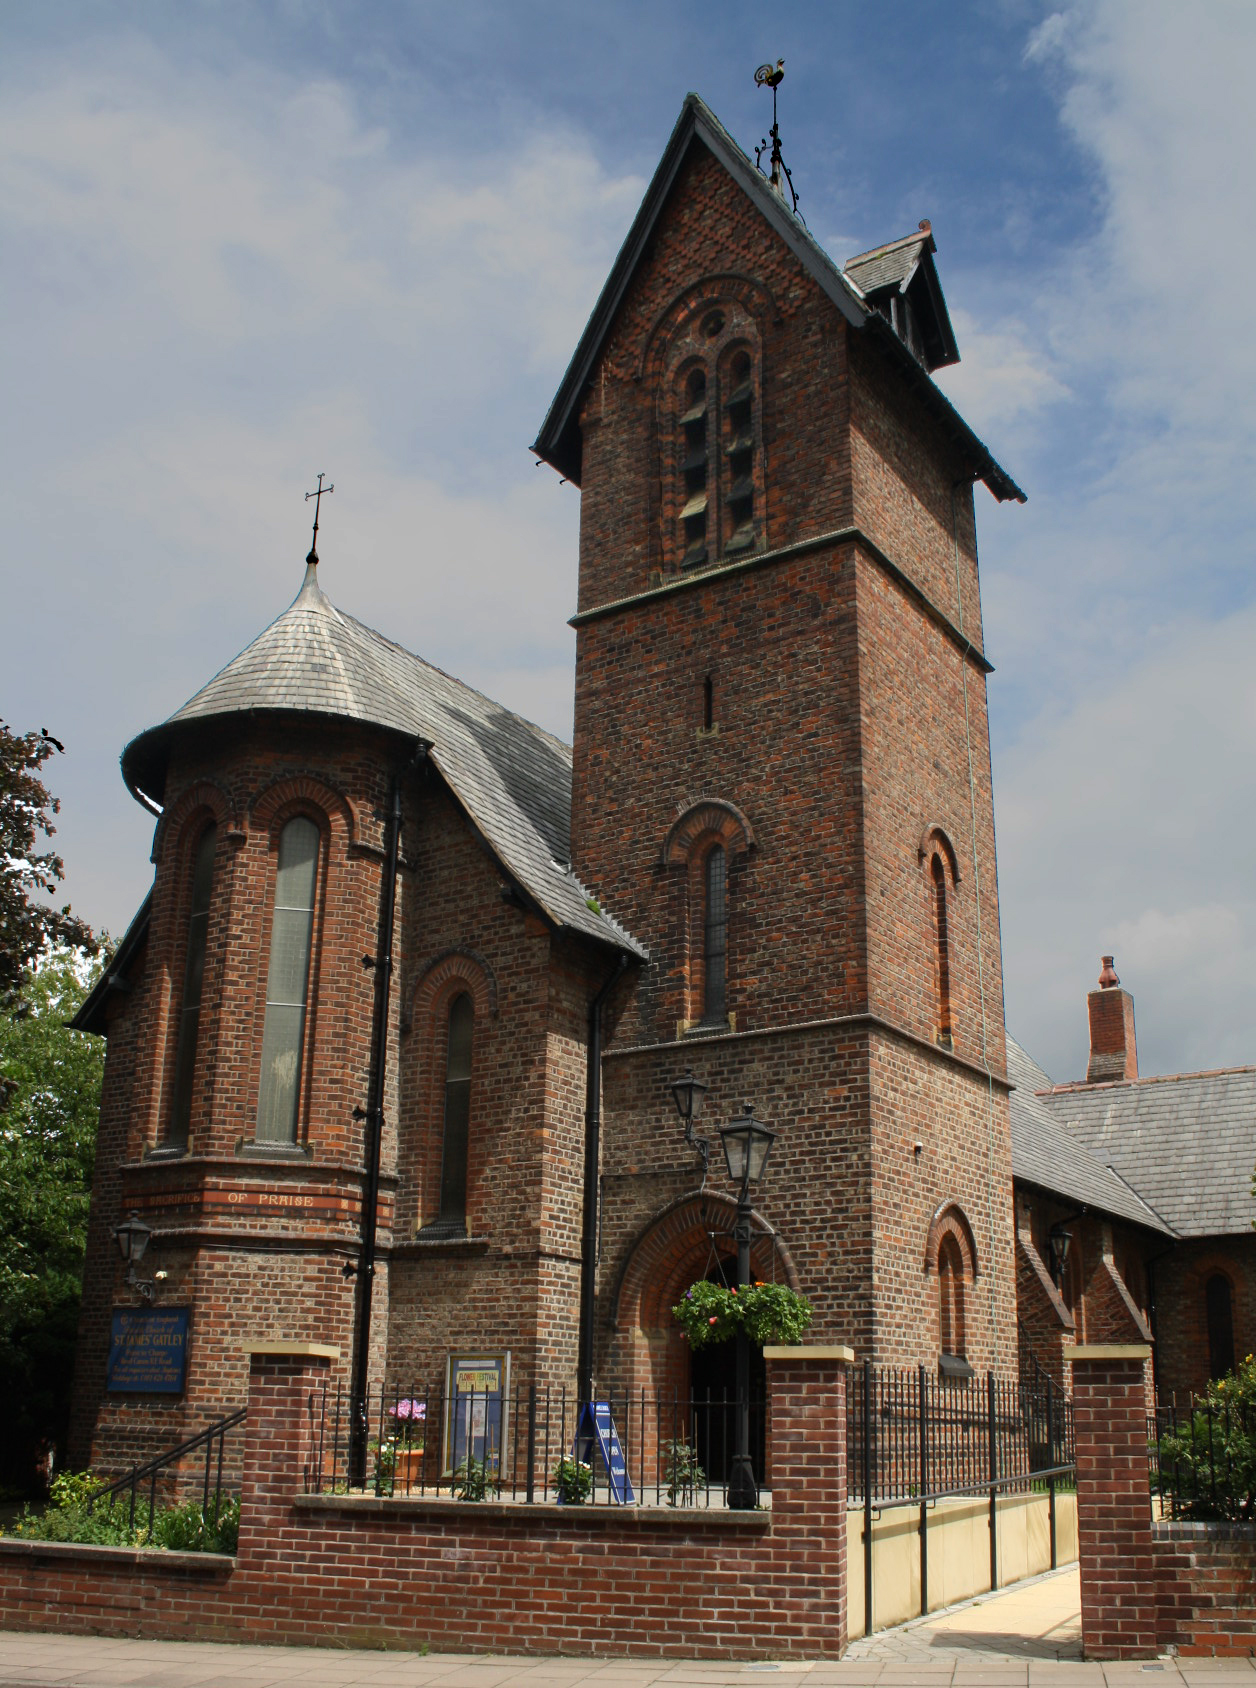 St. James' Church, Gatley